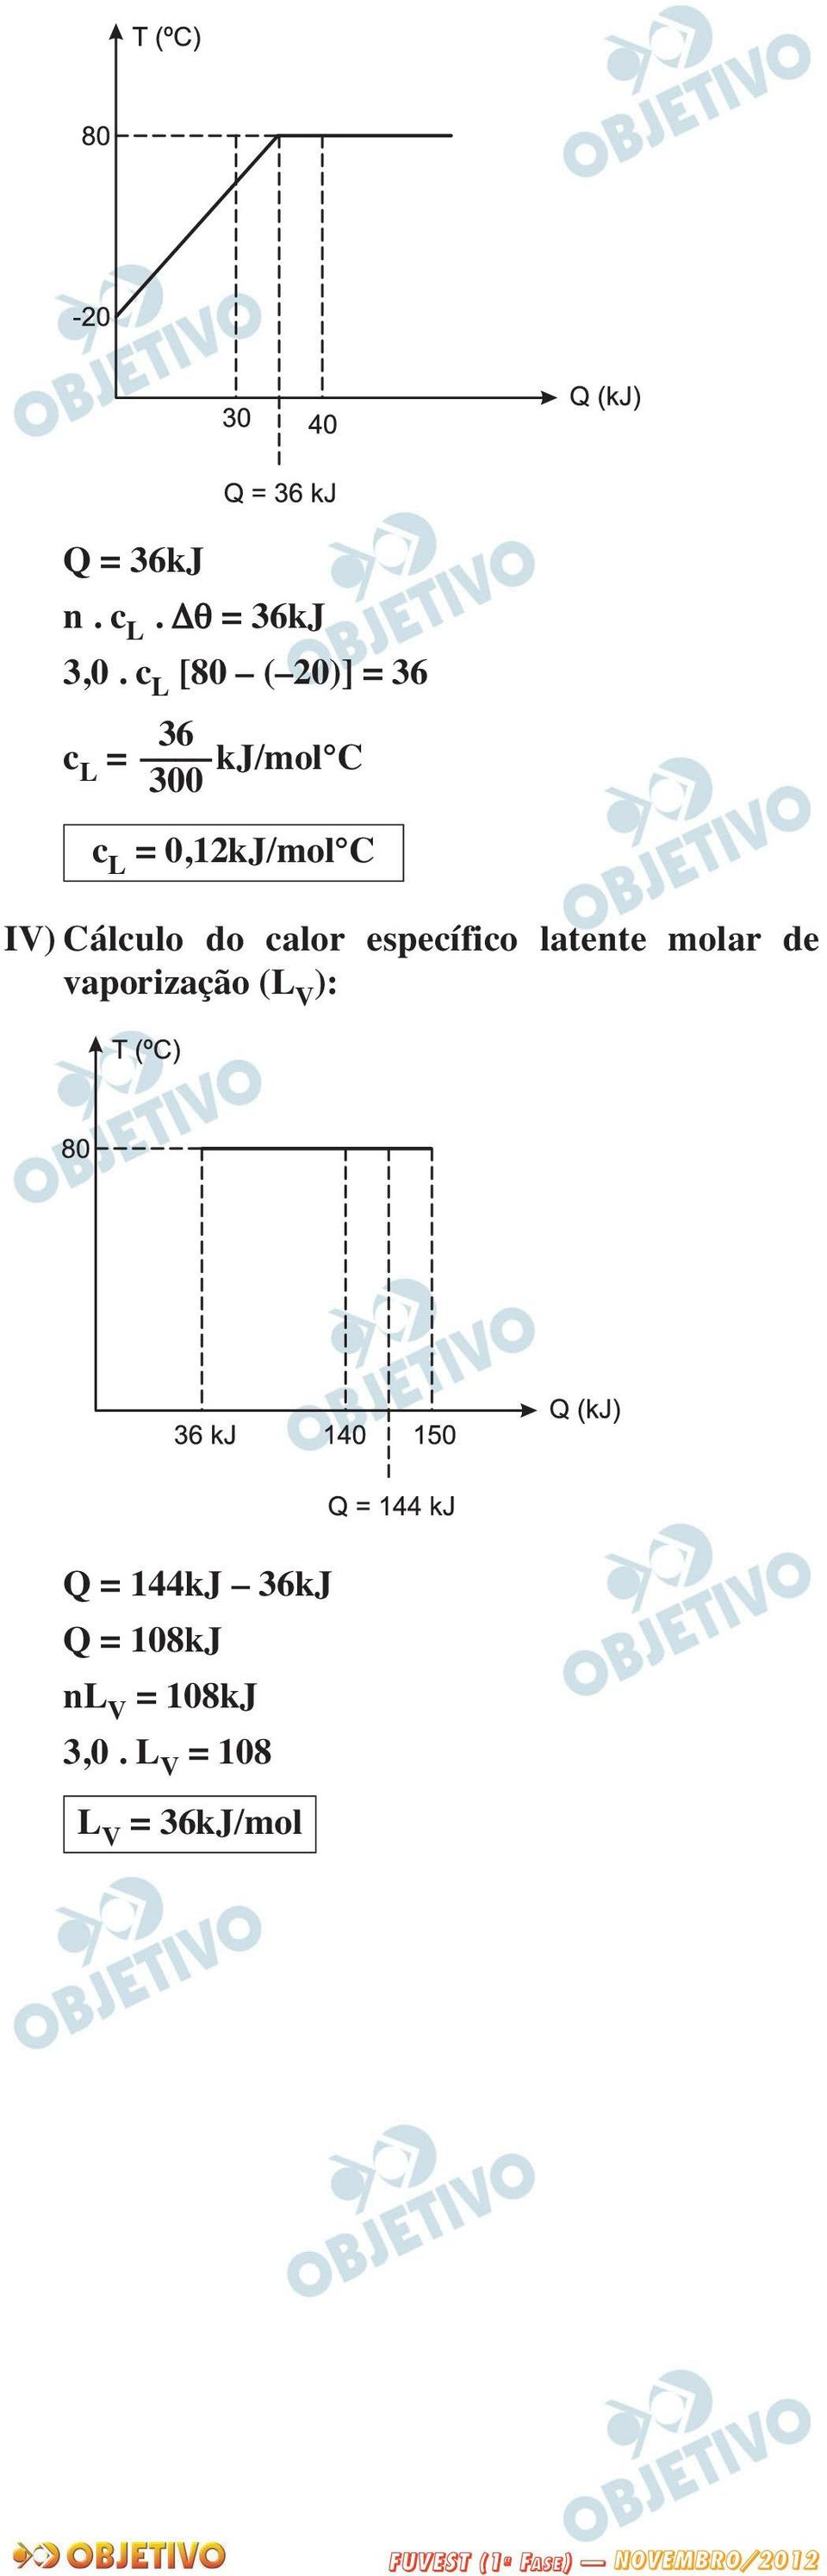 0,12kJ/mol C IV) Cálculo do calor específico latente